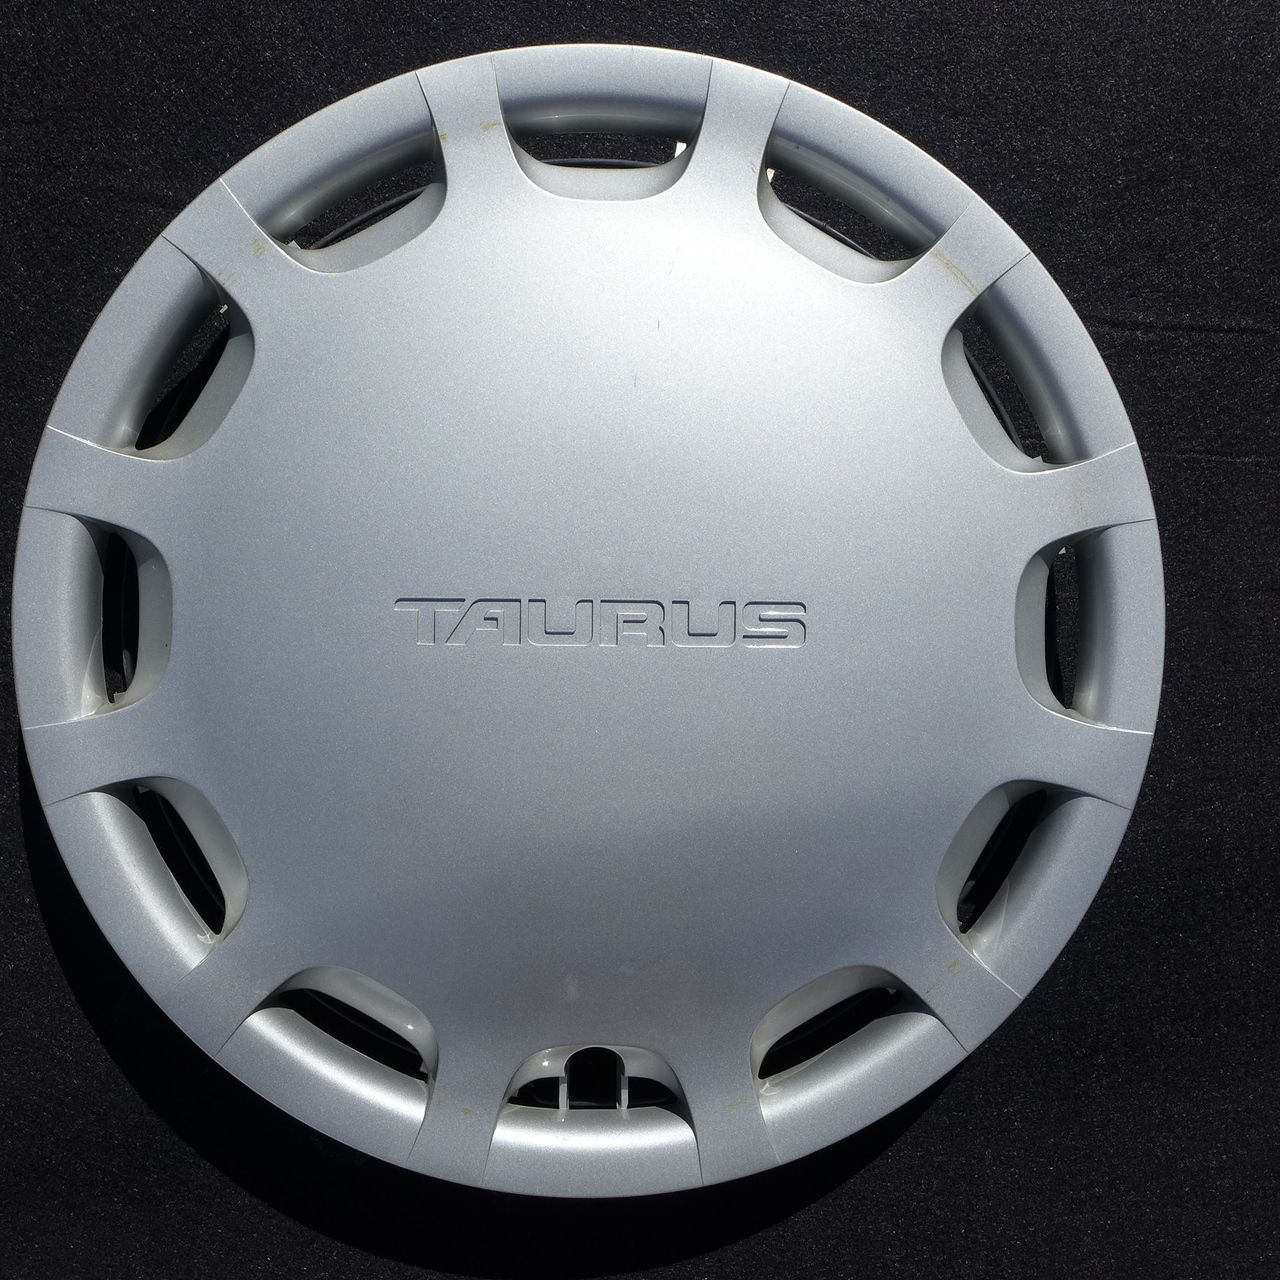 1992 1993 1994 1995 1996 1997 ford aerostar hubcap wheel cover 14 894 wheels originals and ford aerostar